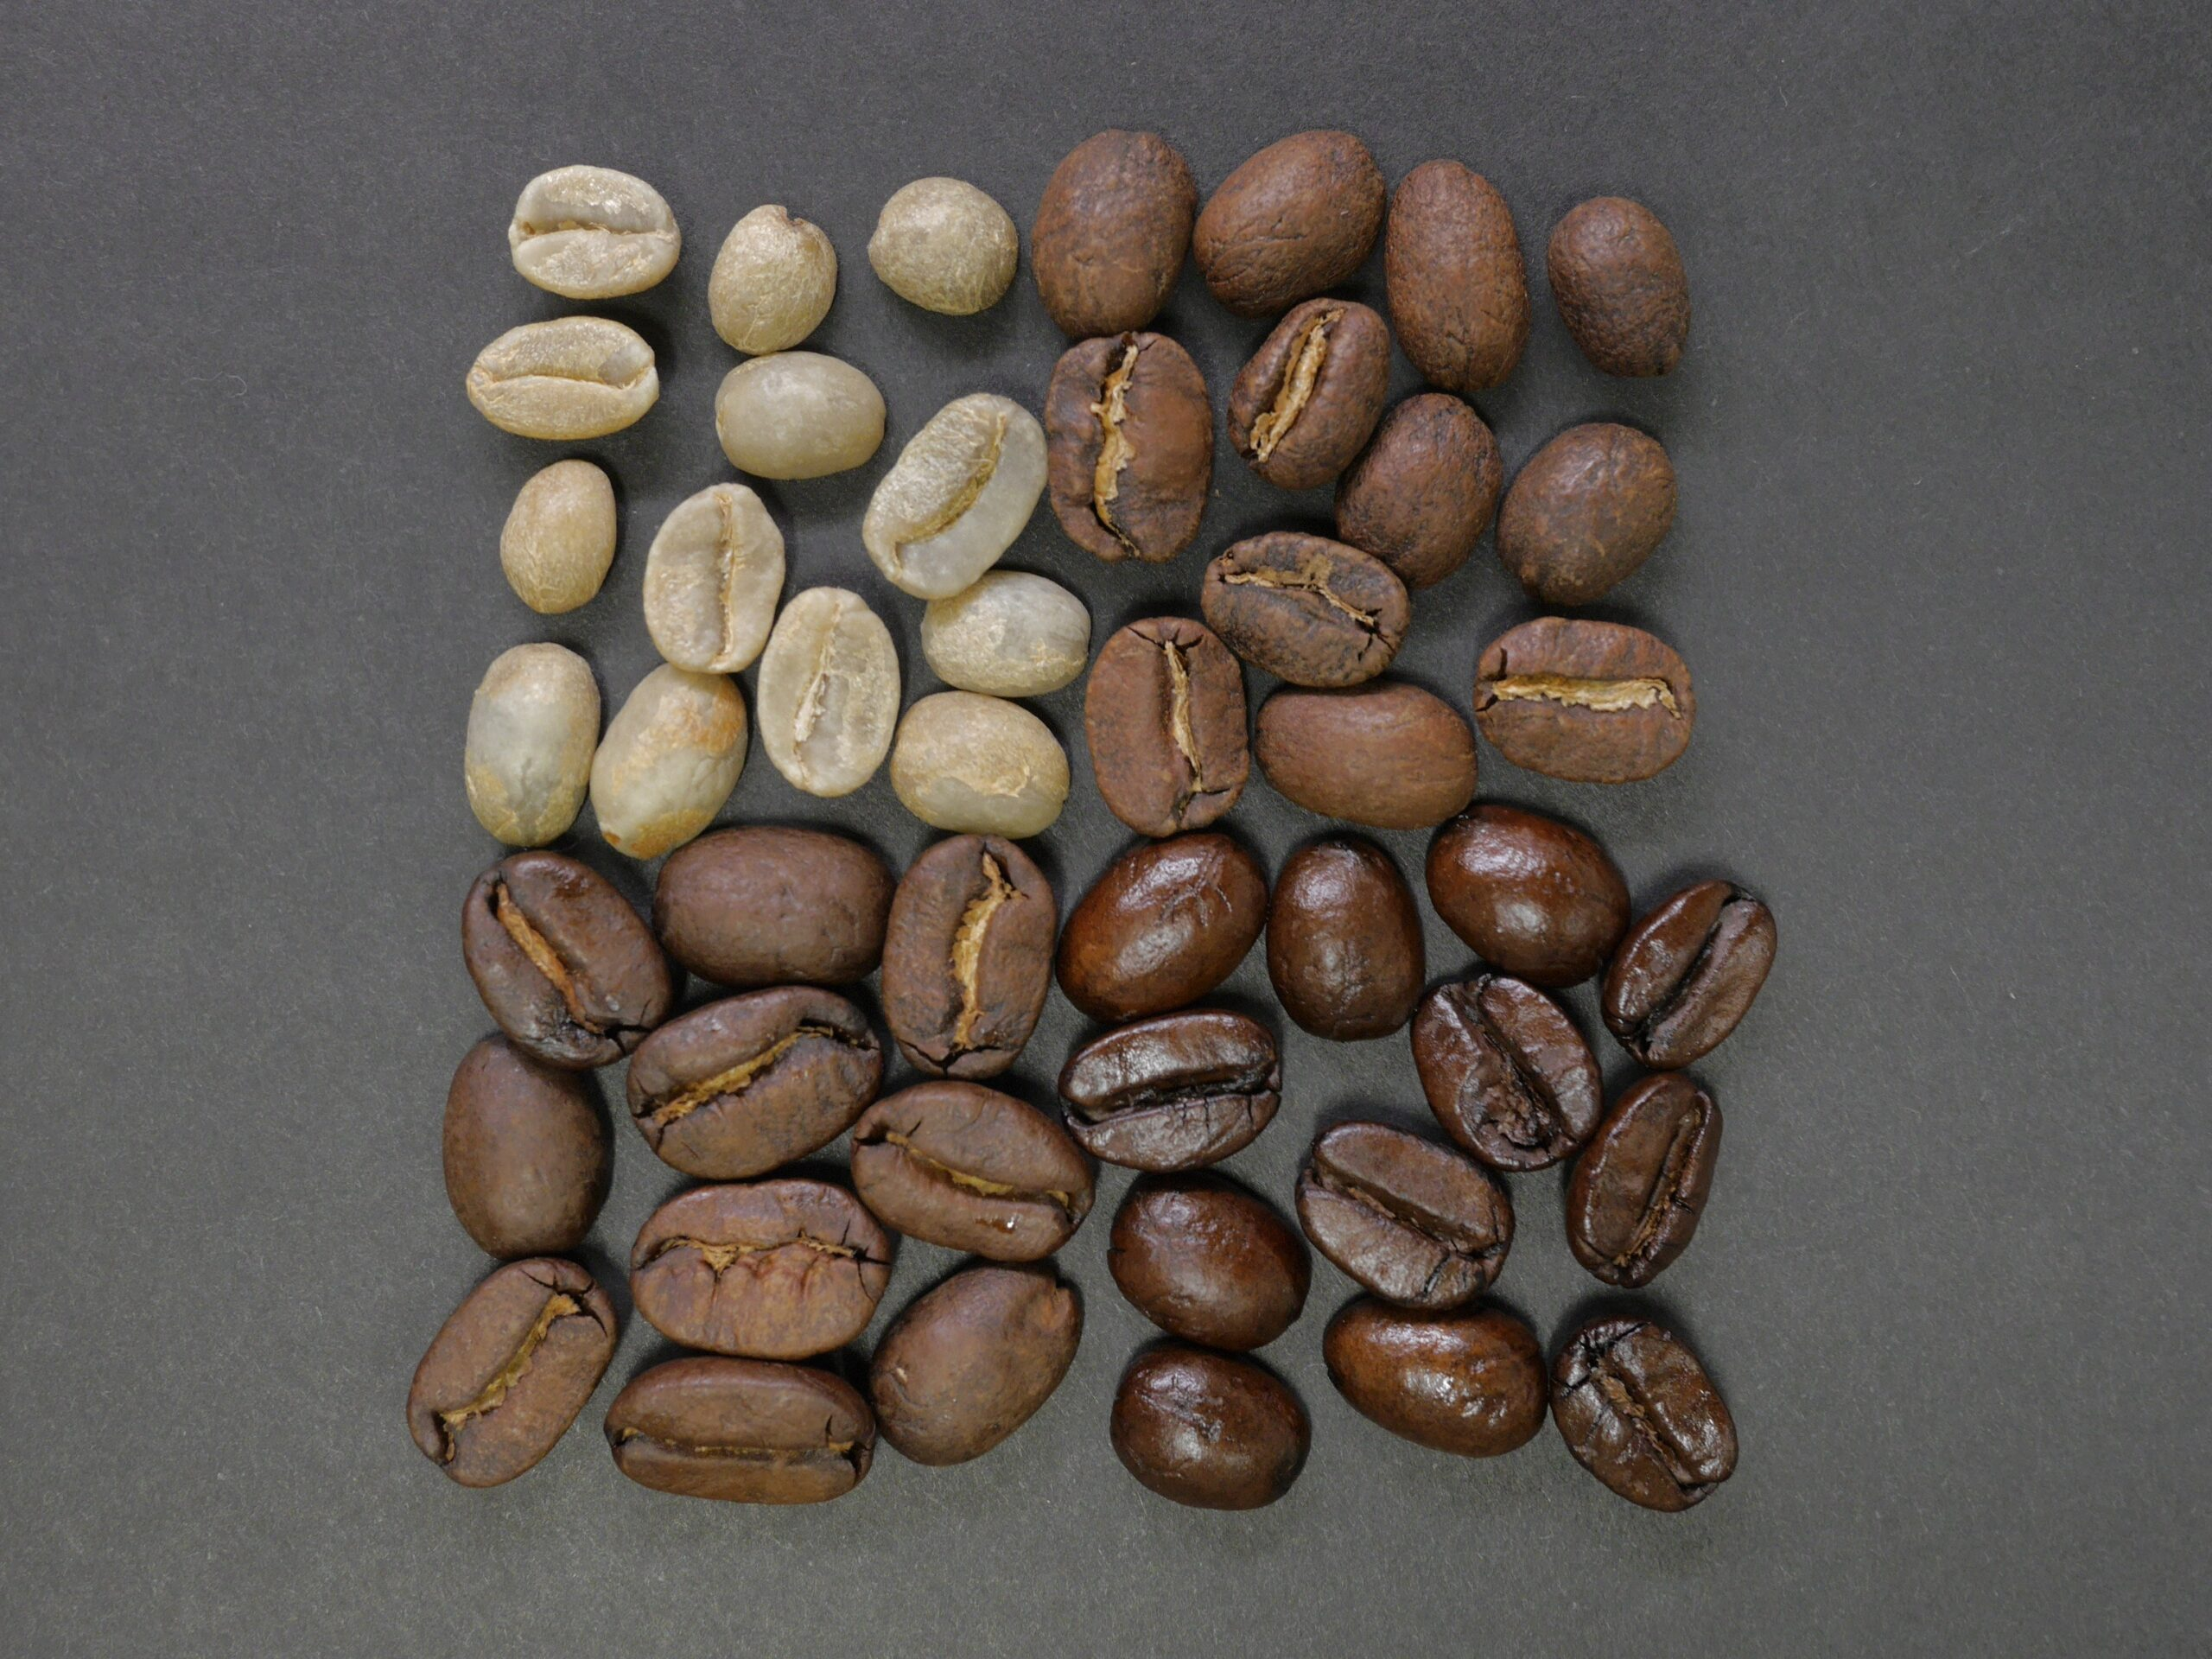 Coffee Bean Types and Their Characteristics